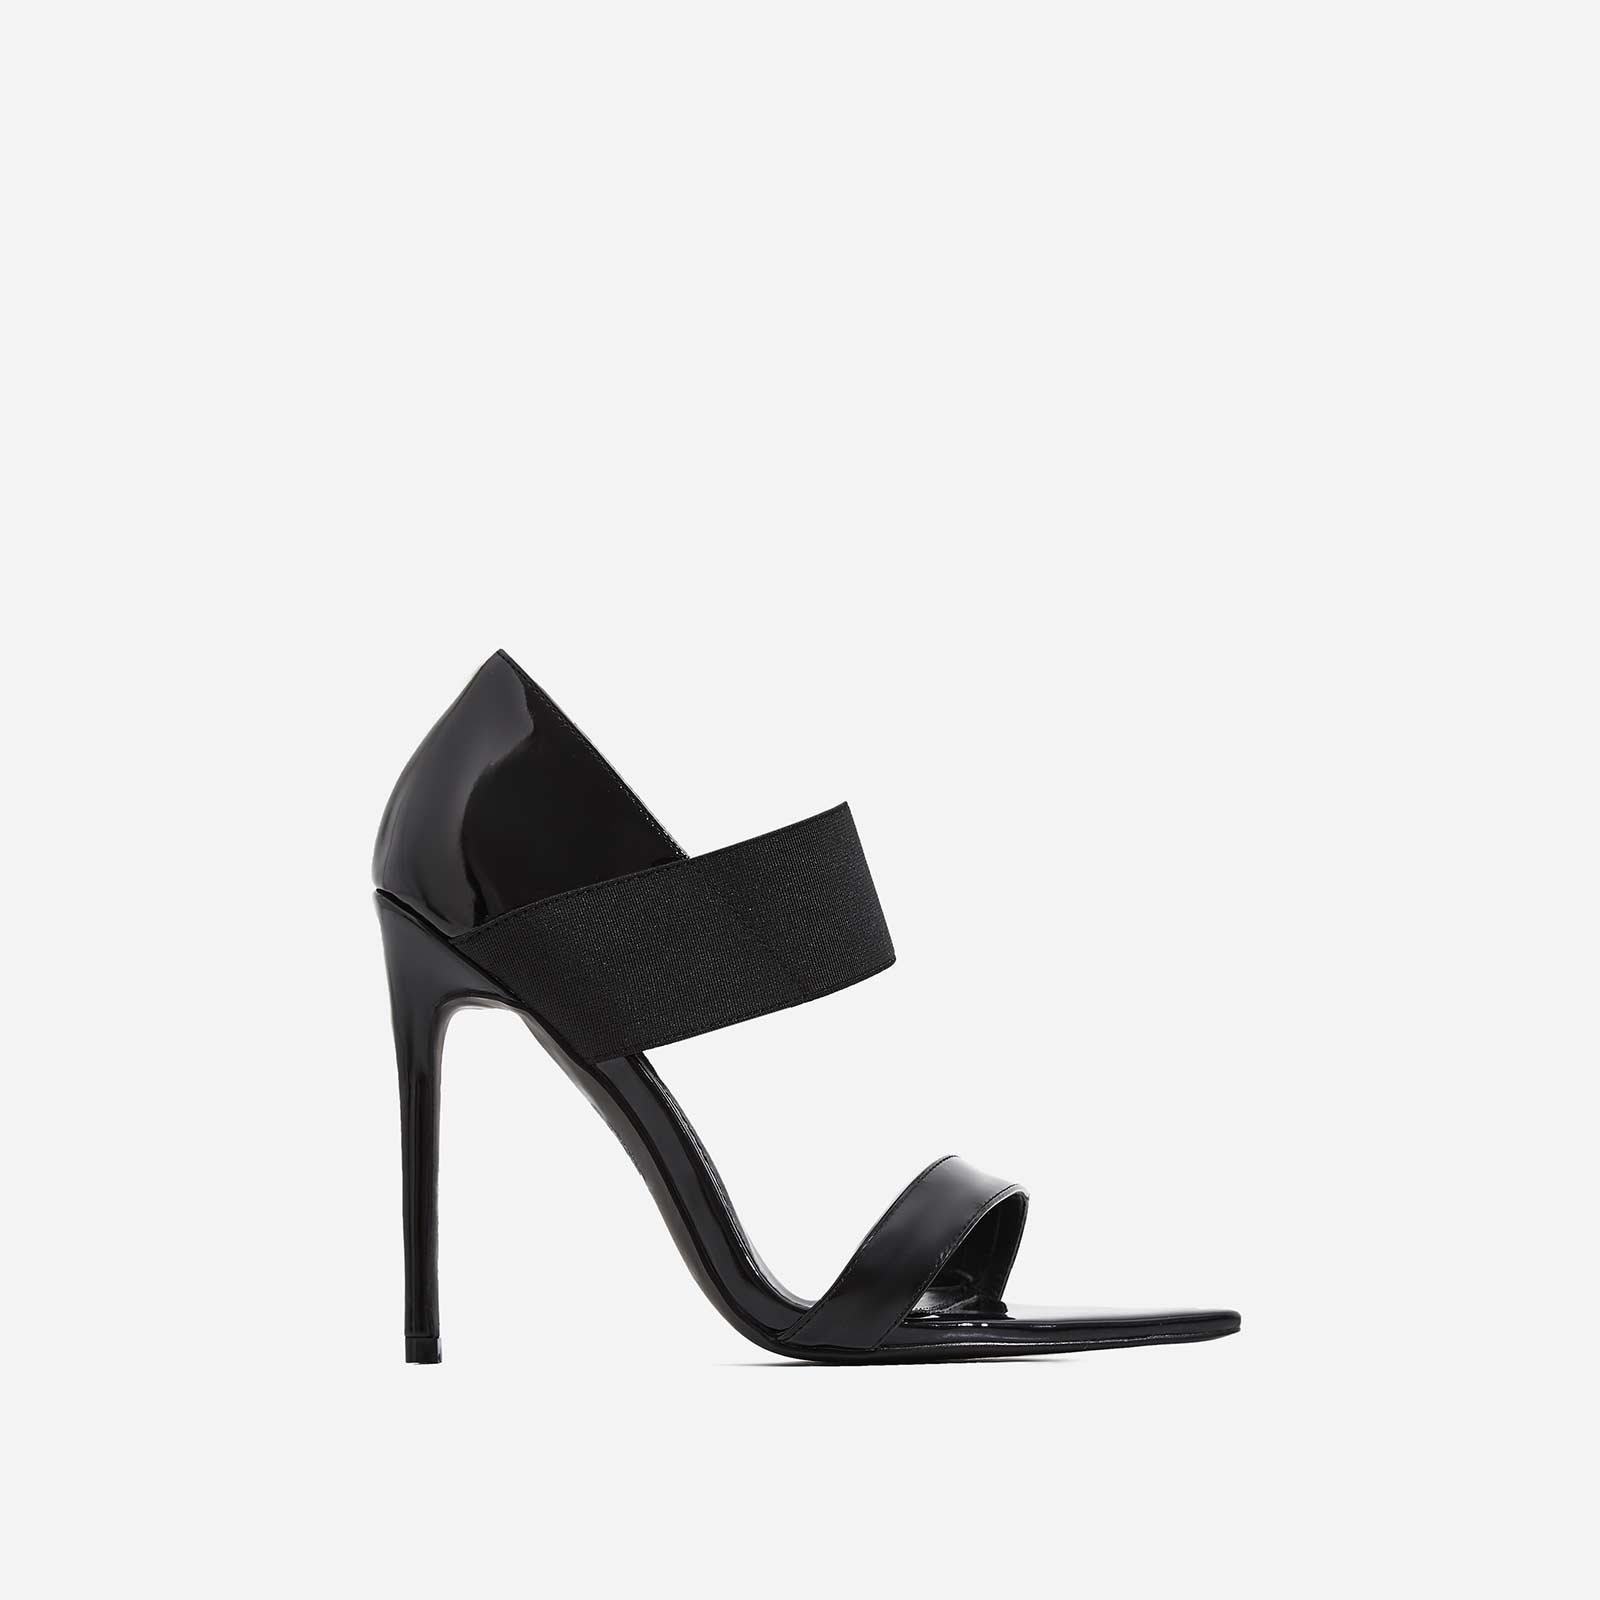 Erika Elasticated Pointed Peep Toe Heel In Black Patent